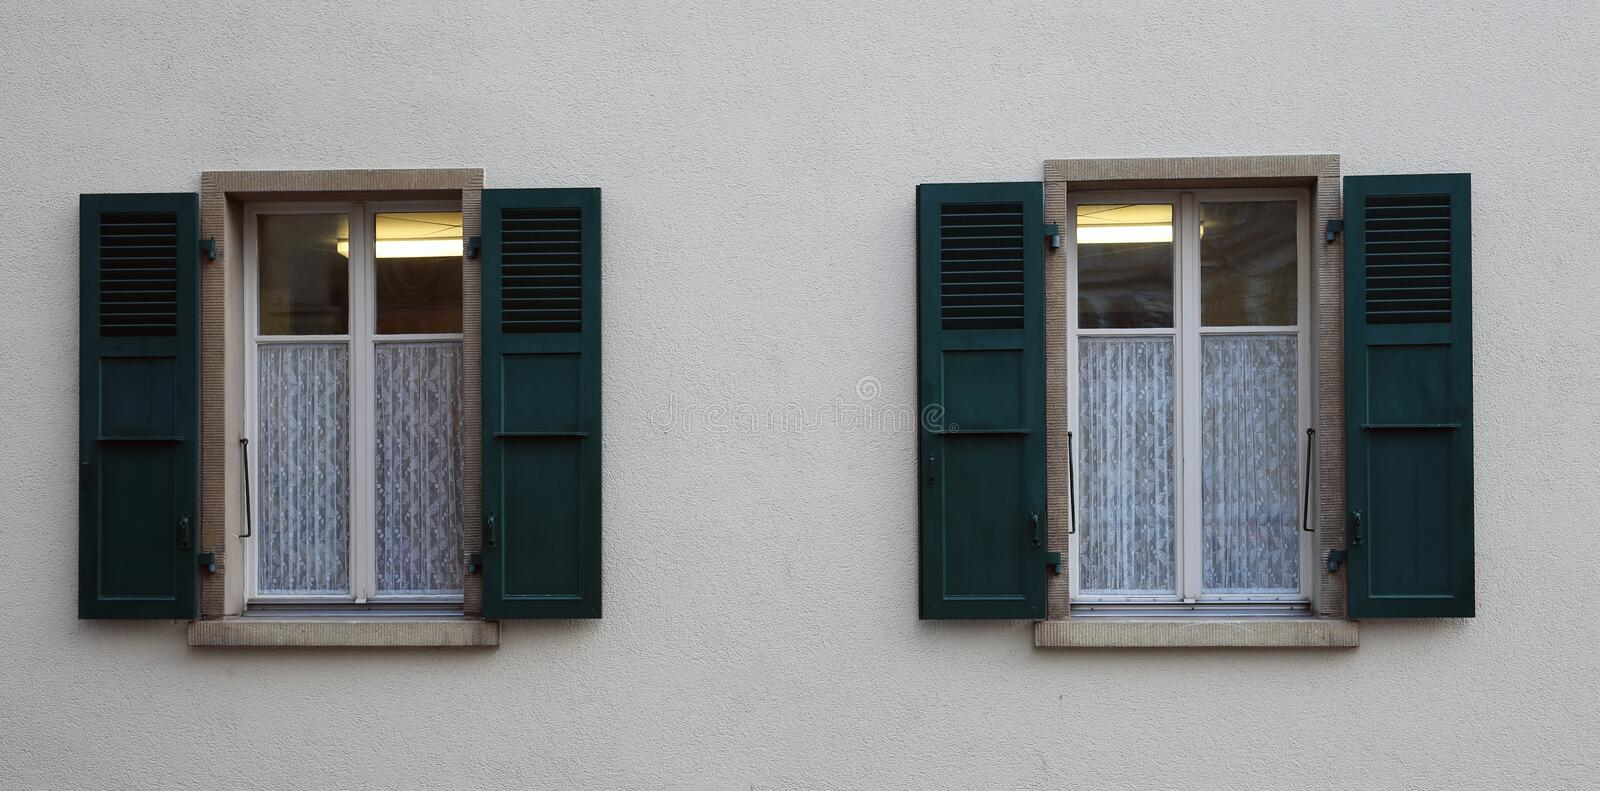 Windows of a Medieval Style Building in Switzerland. Beautiful medieval style windows of a building. This is photographed in Nyon, Switzerland. A small medieval royalty free stock images